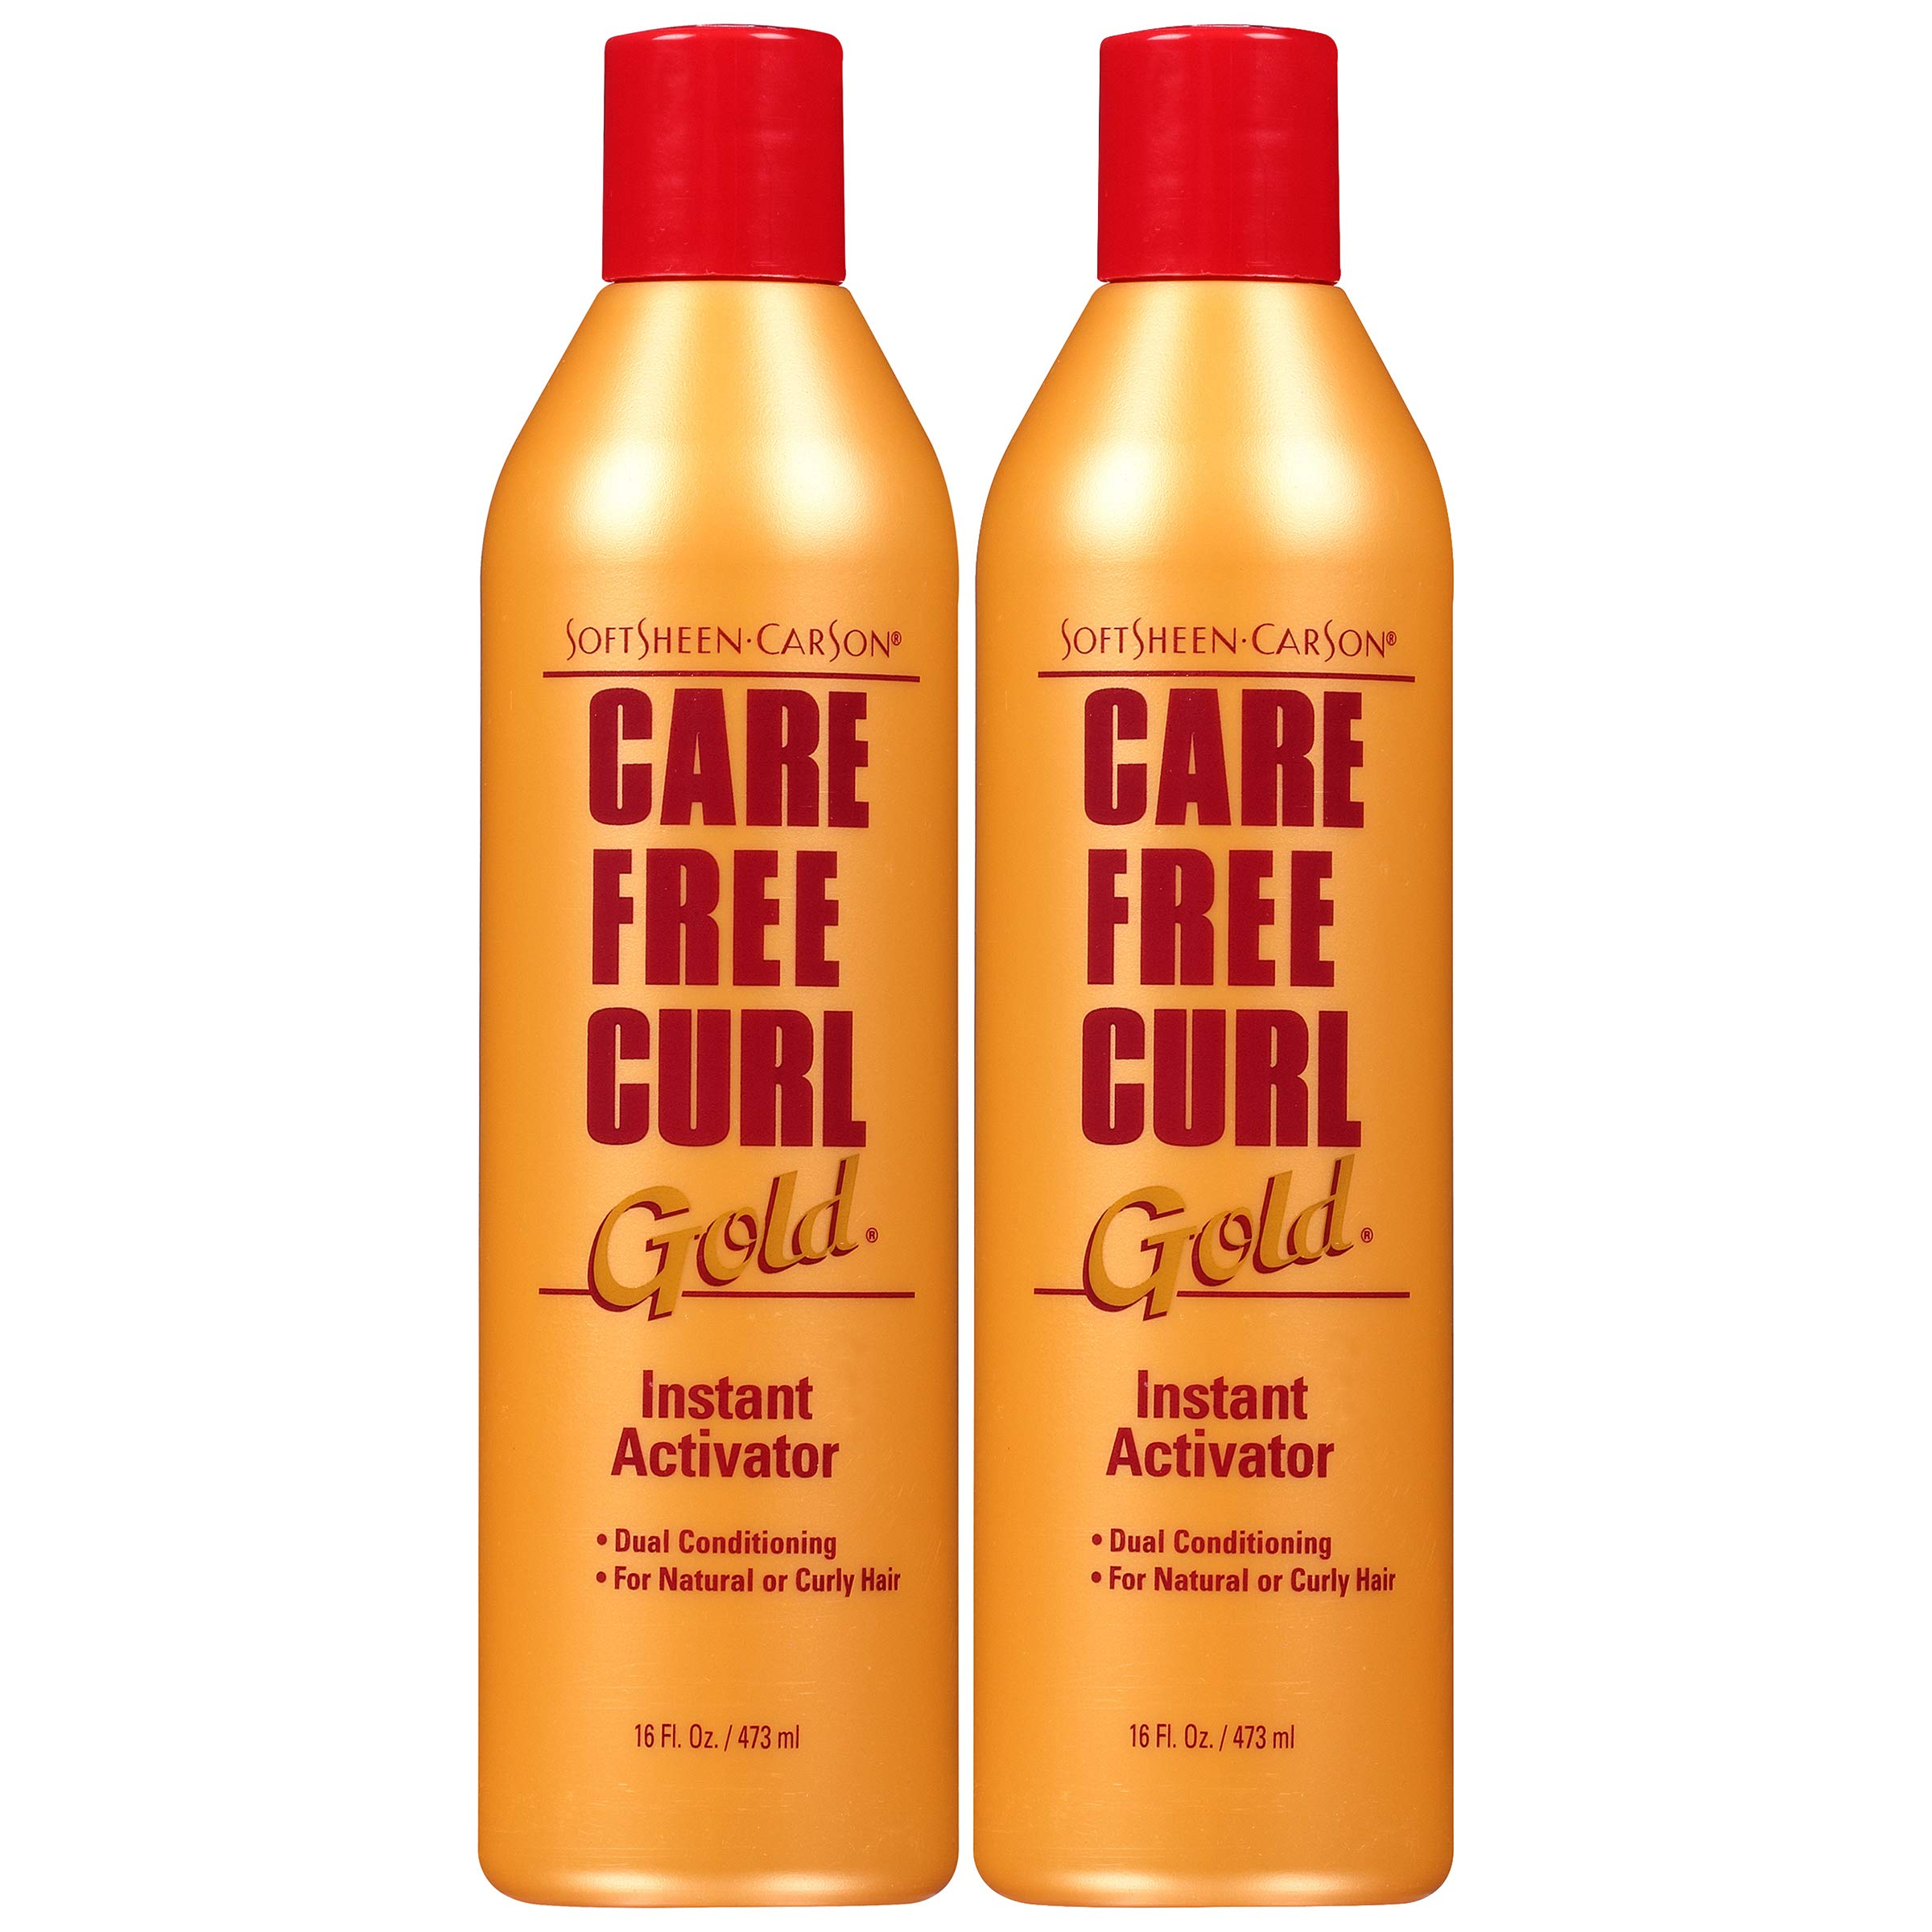 Curly Hair Products by SoftSheen-Carson Care Free Curl Gold Instant Activator, for Natural and Curly Hair, Softens and Hydrates, Moisturizes Hair and Great for Easy Combing, 2 Count